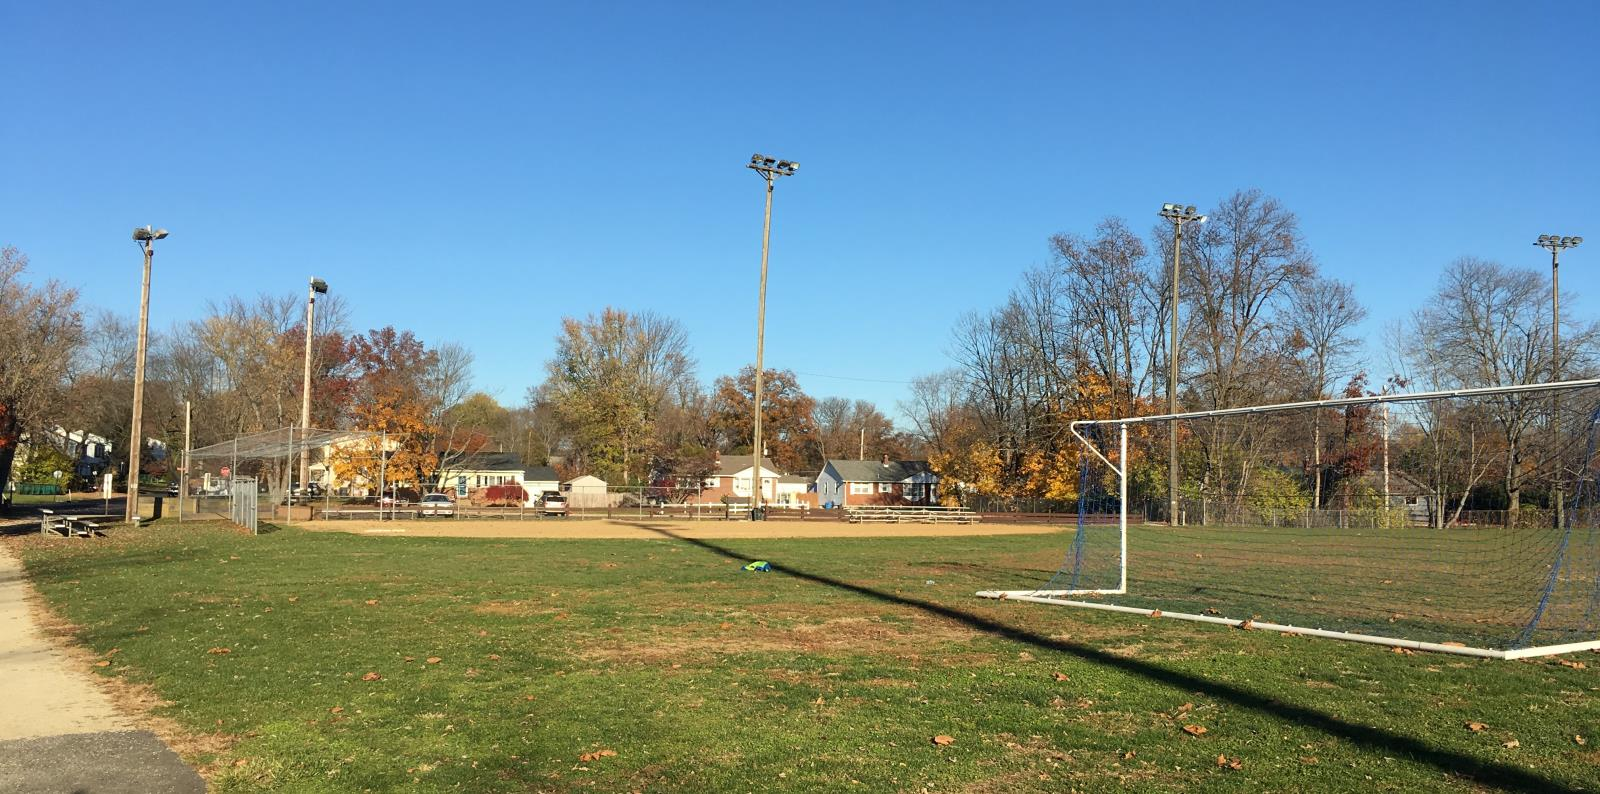 Roslyn Park Ball field